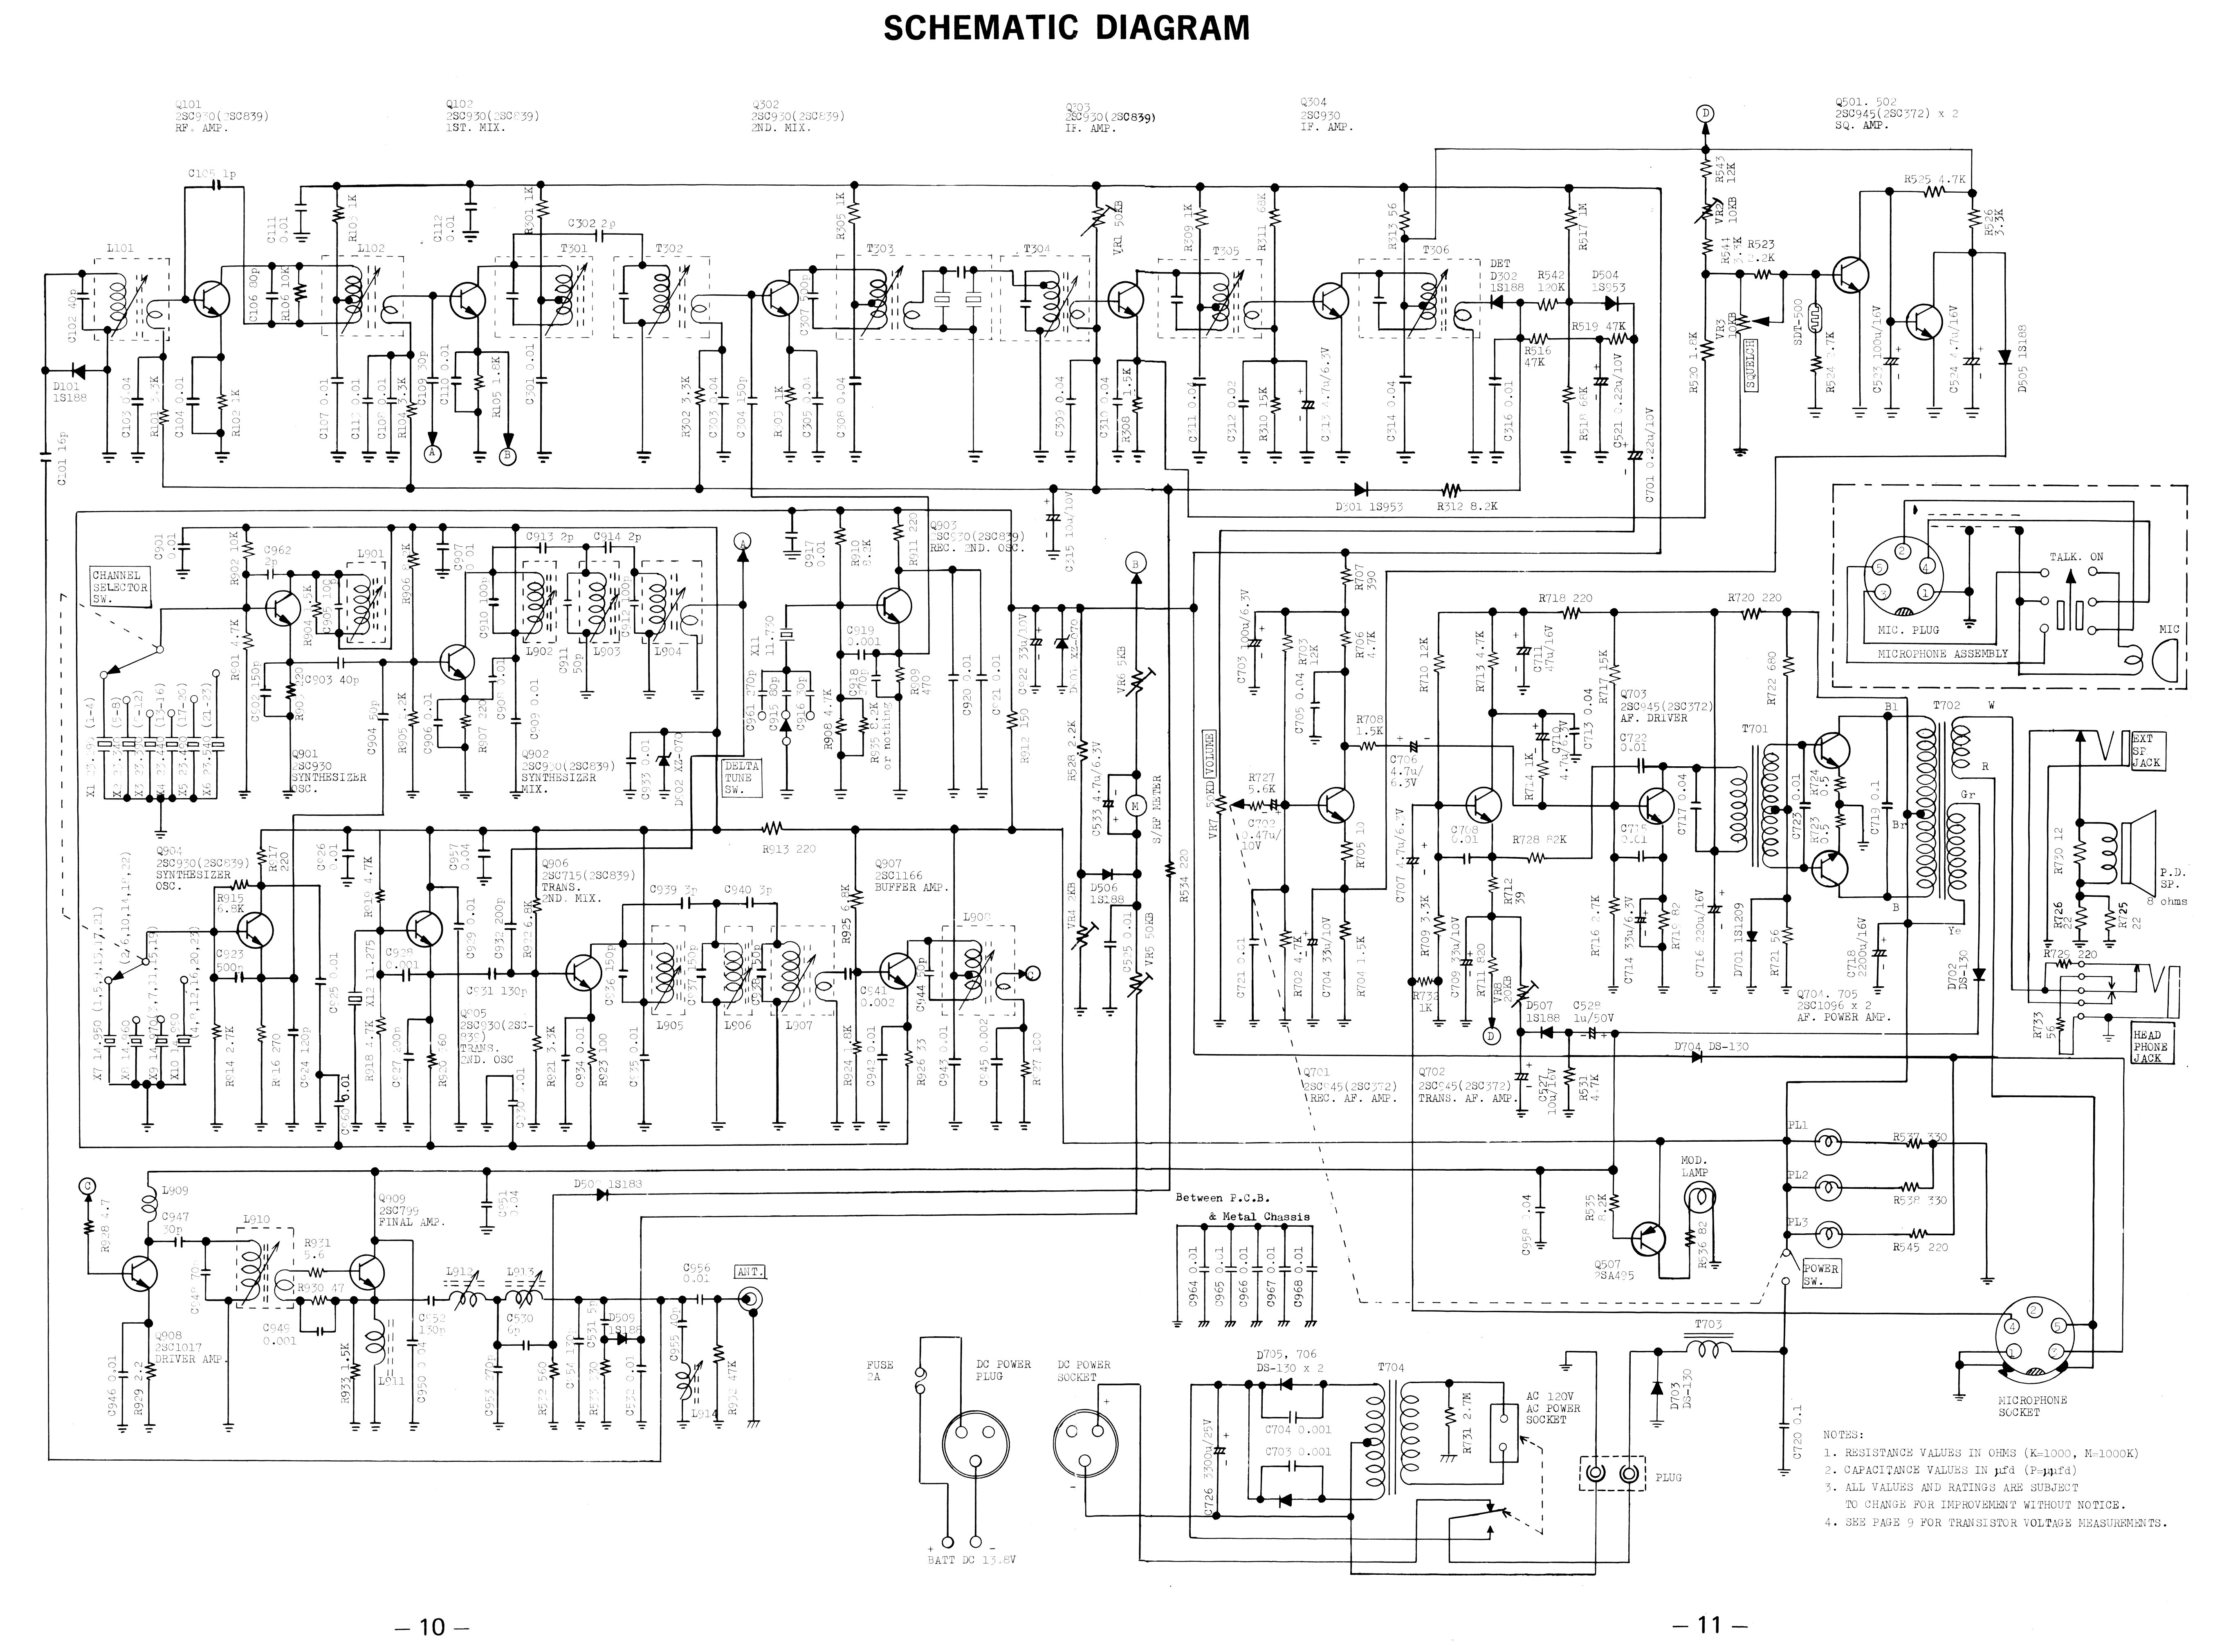 realistic trc 30 a (21 143) navaho Schematic Diagram Schematic Diagram #33 schematic diagrams